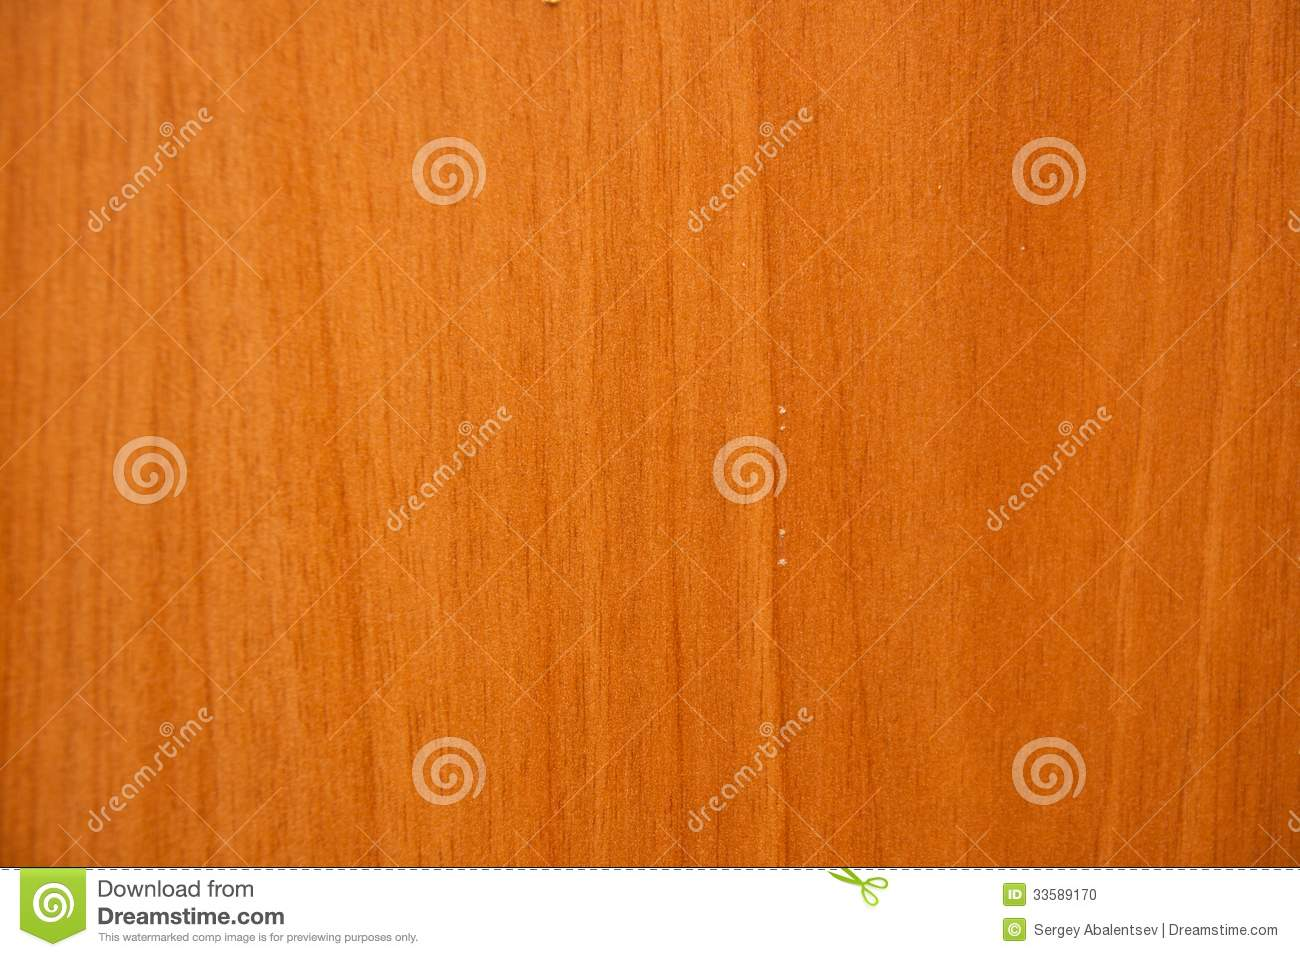 wooden texture background stock photo image of line 33589170